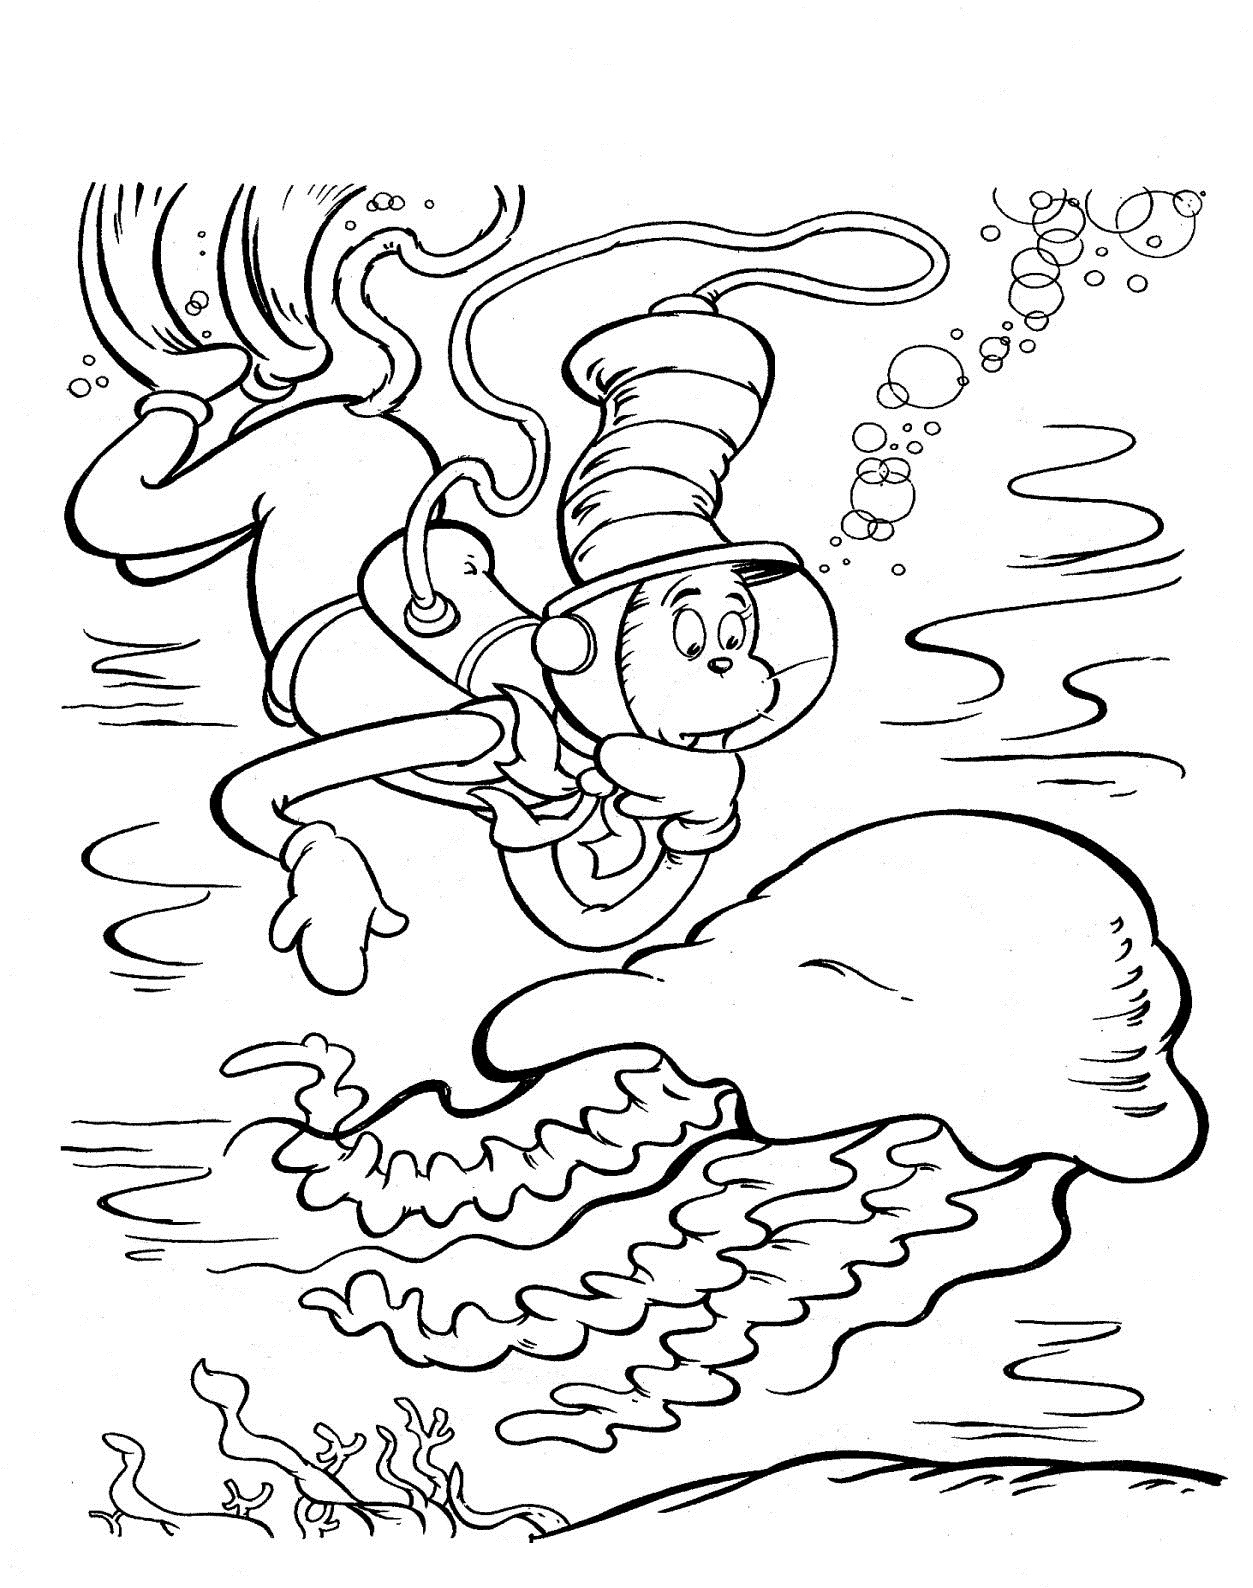 Printable Cat in the Hat Coloring Page